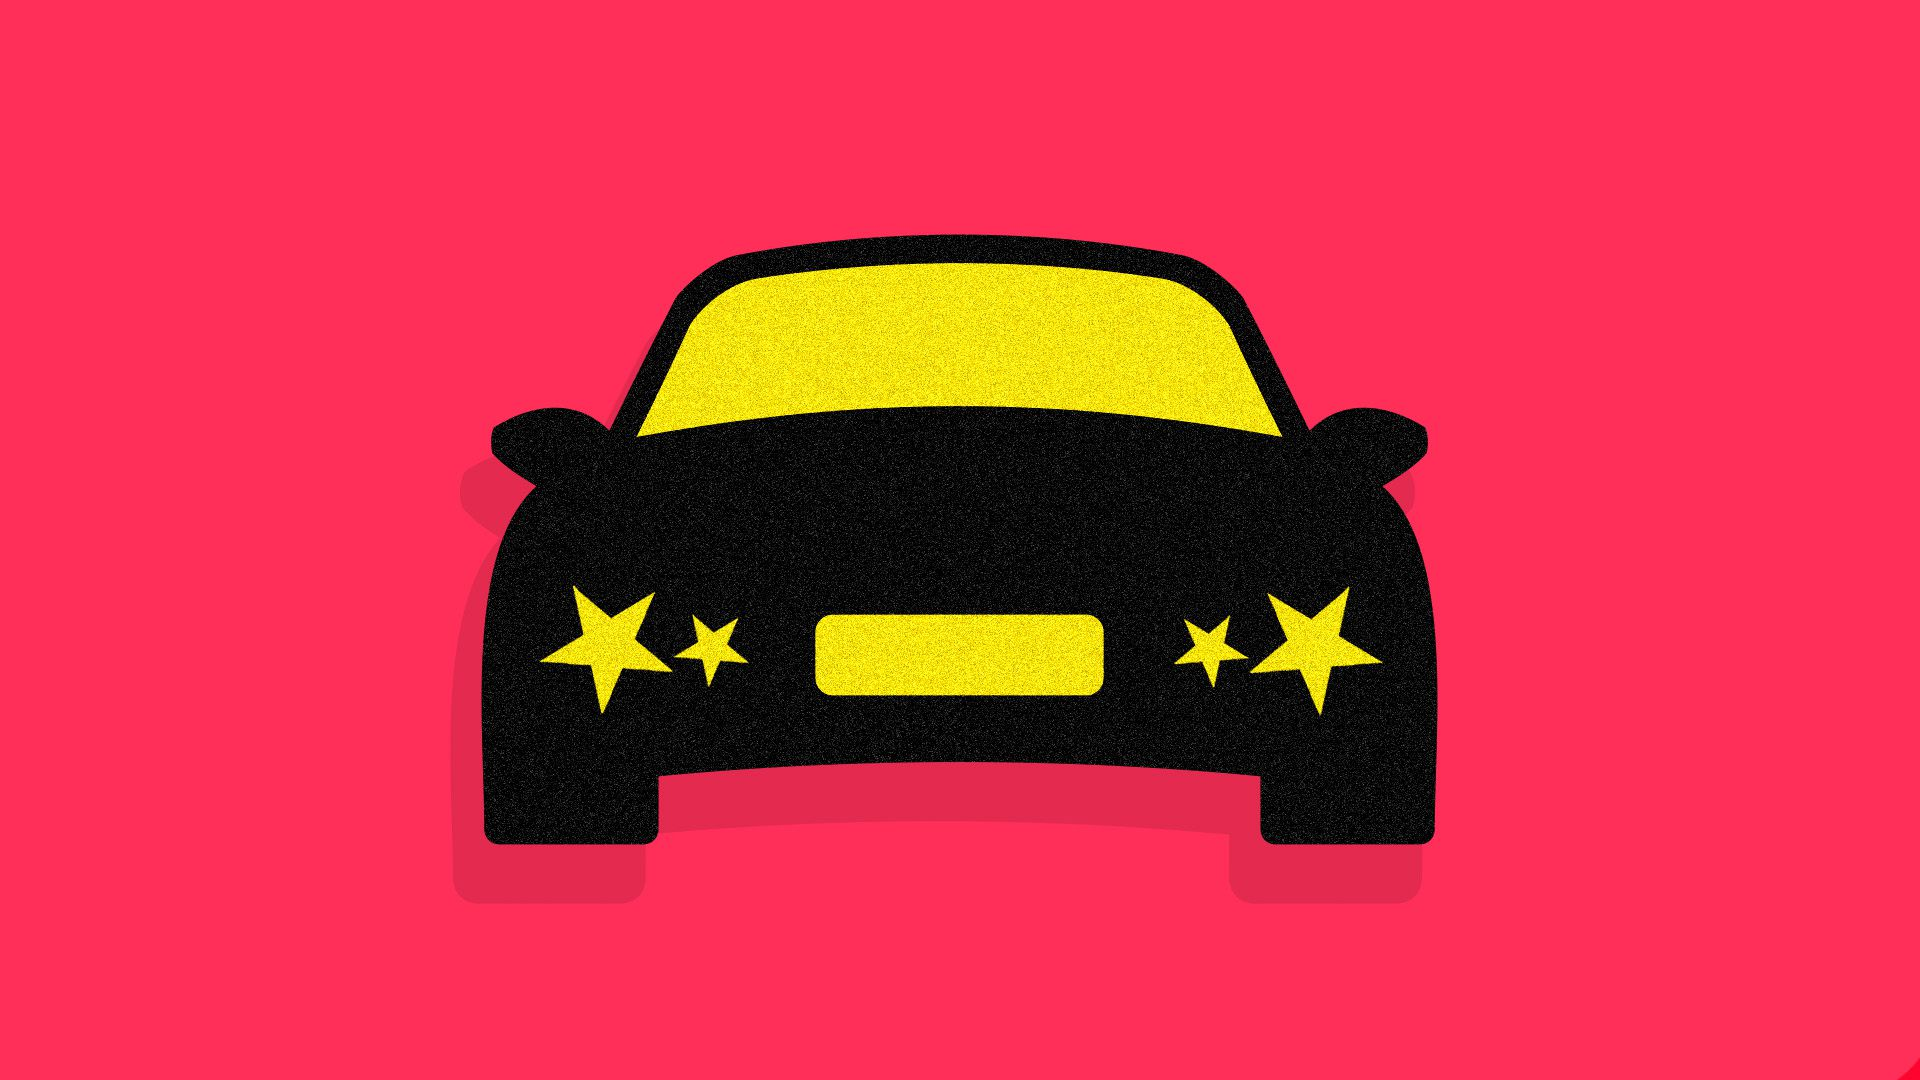 Illustration of a car with stars instead of headlights